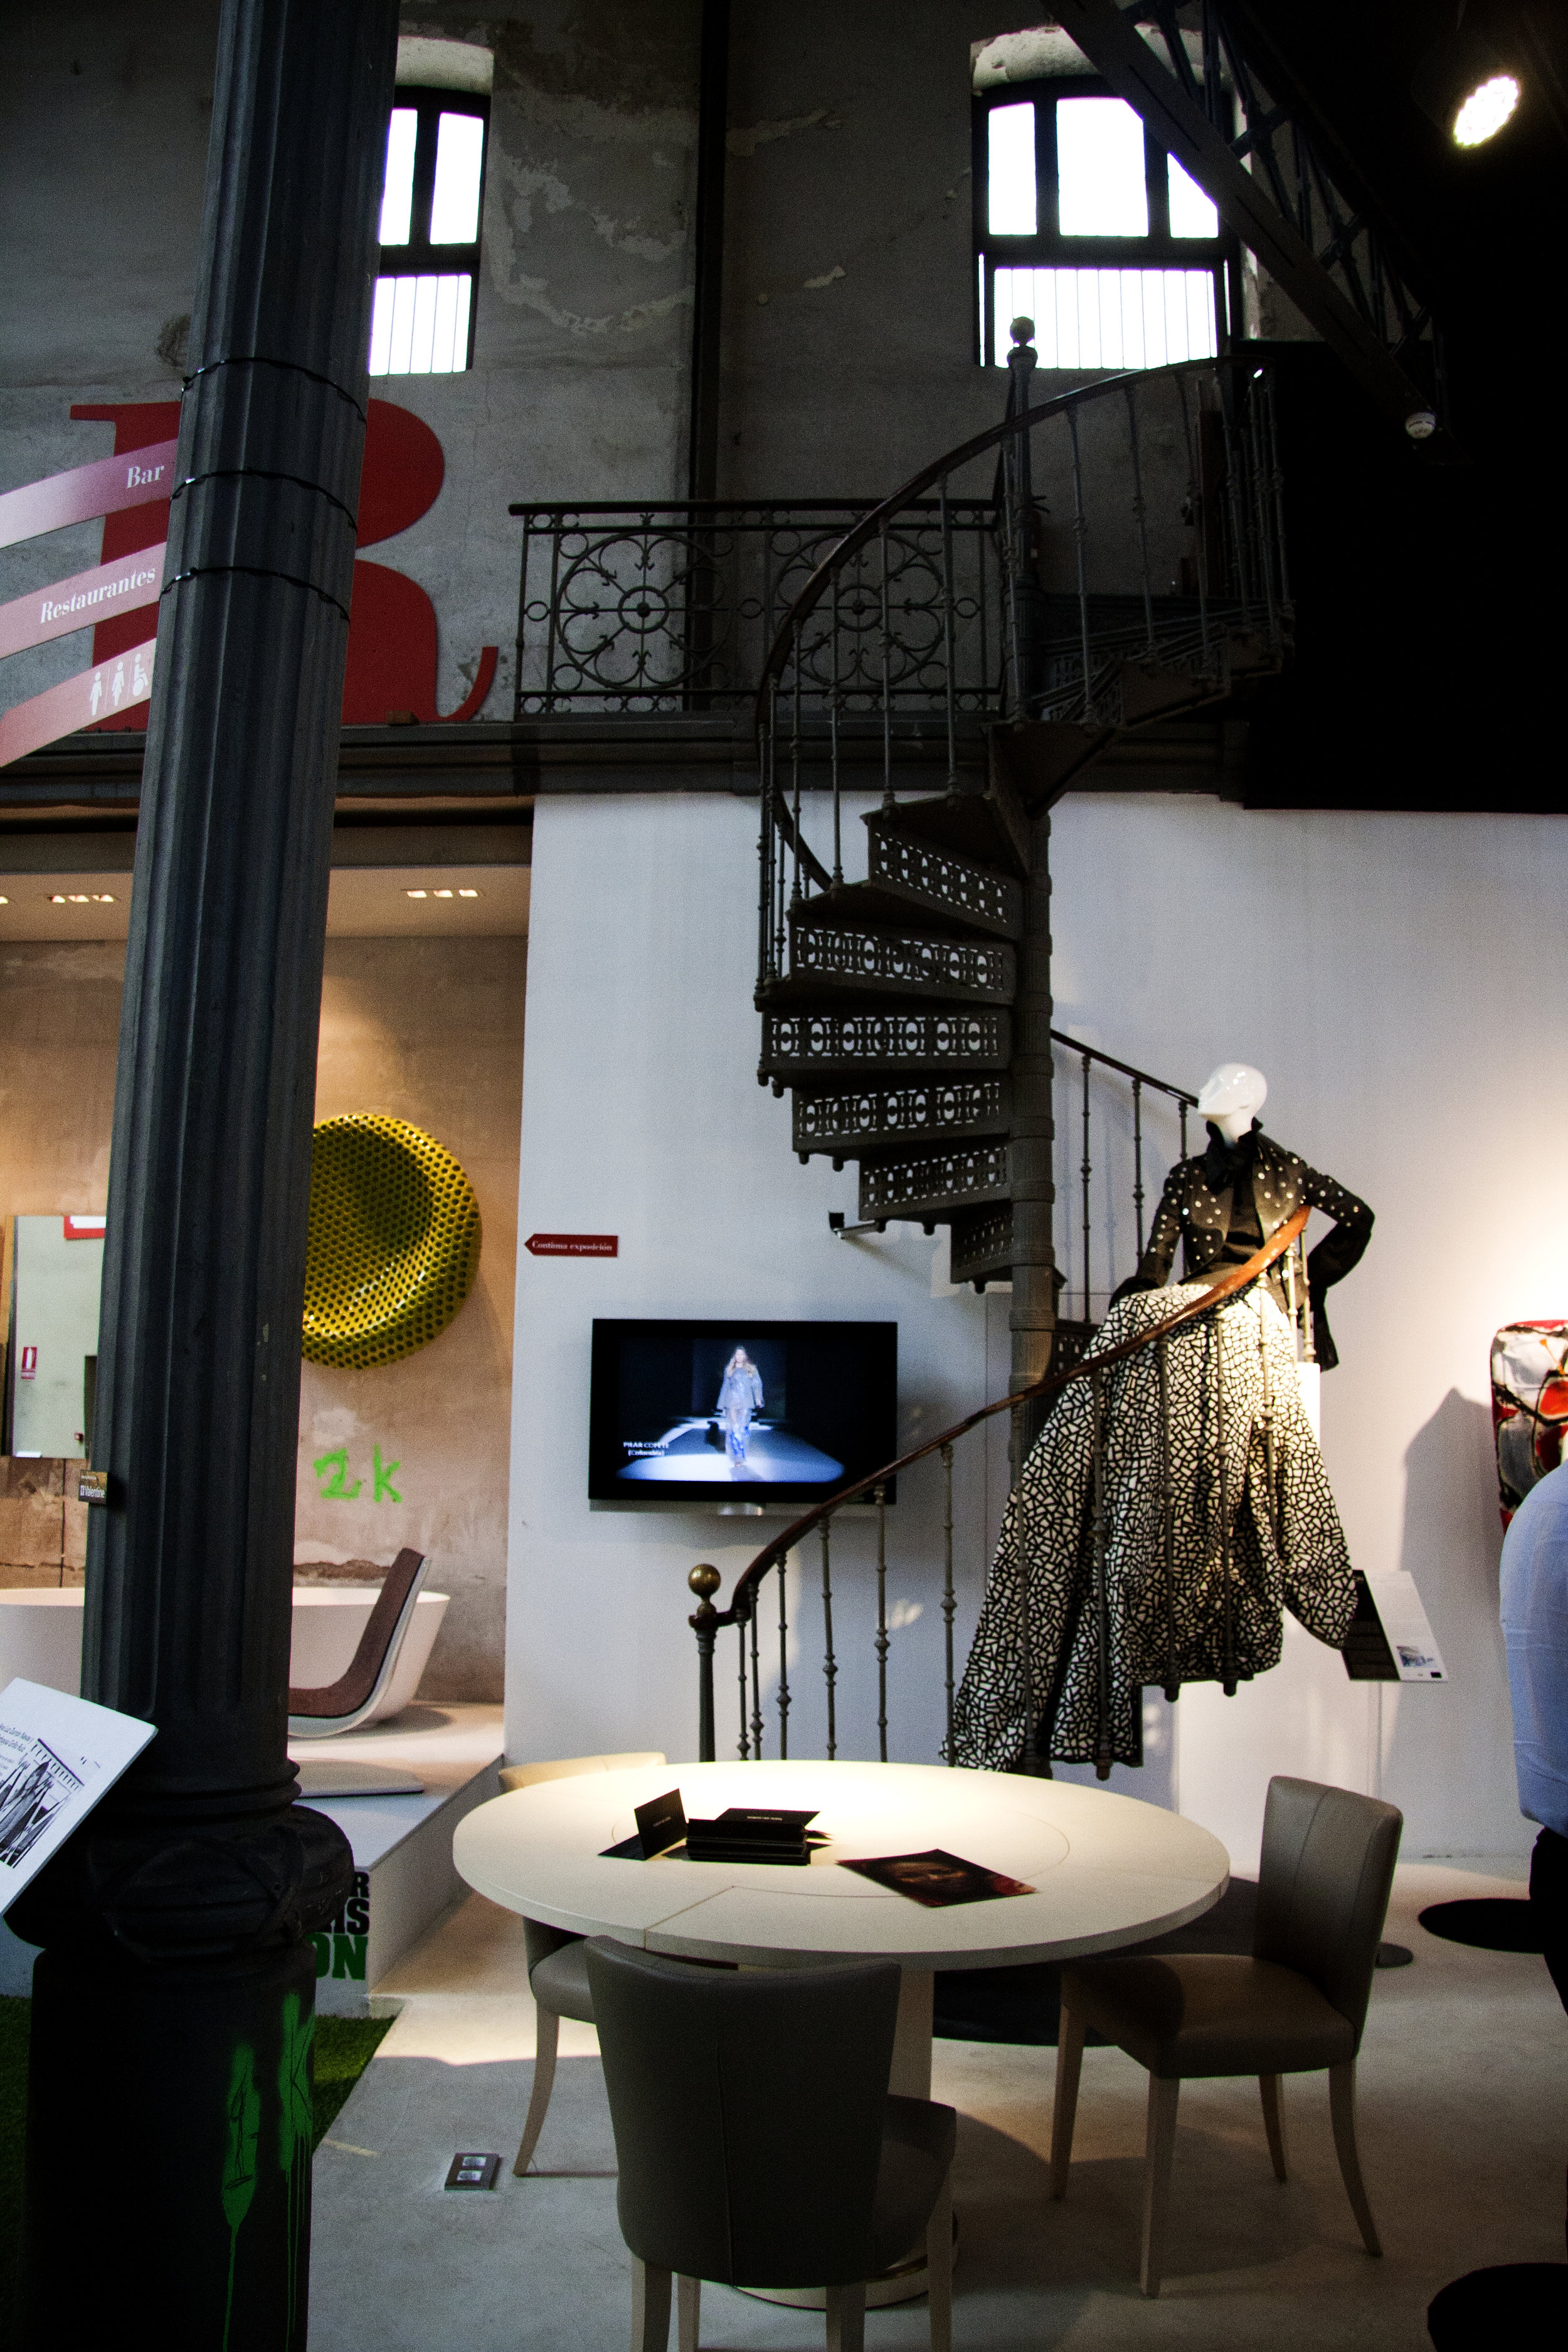 spiral metallic staircase with a woman mannequin and a table with chairs